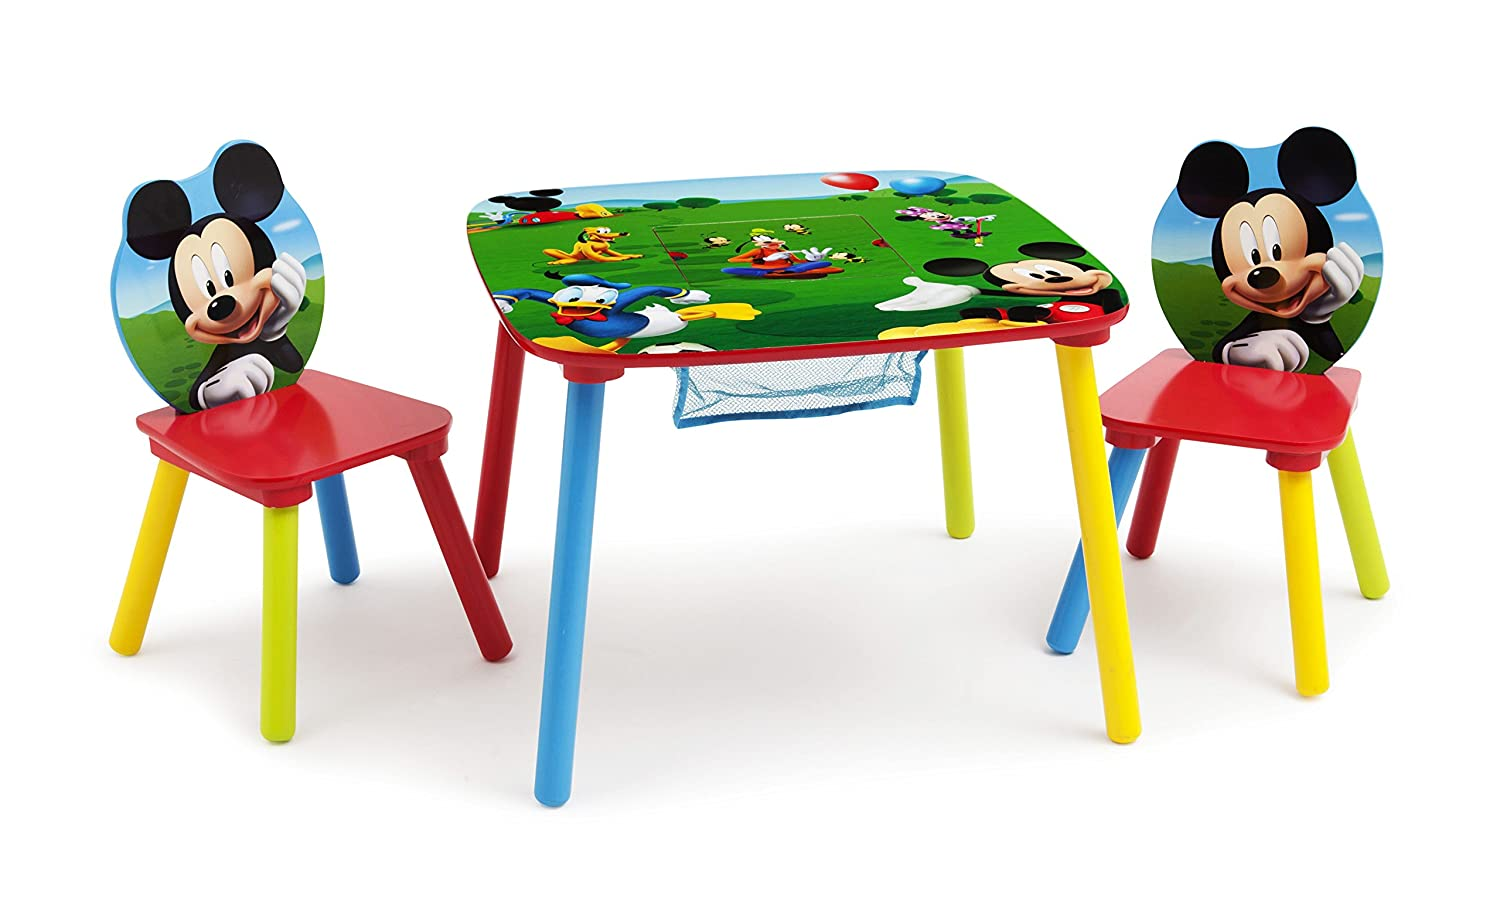 Disney Mickey Mouse Storage Table and Chairs Set by Delta Children TT89462MM